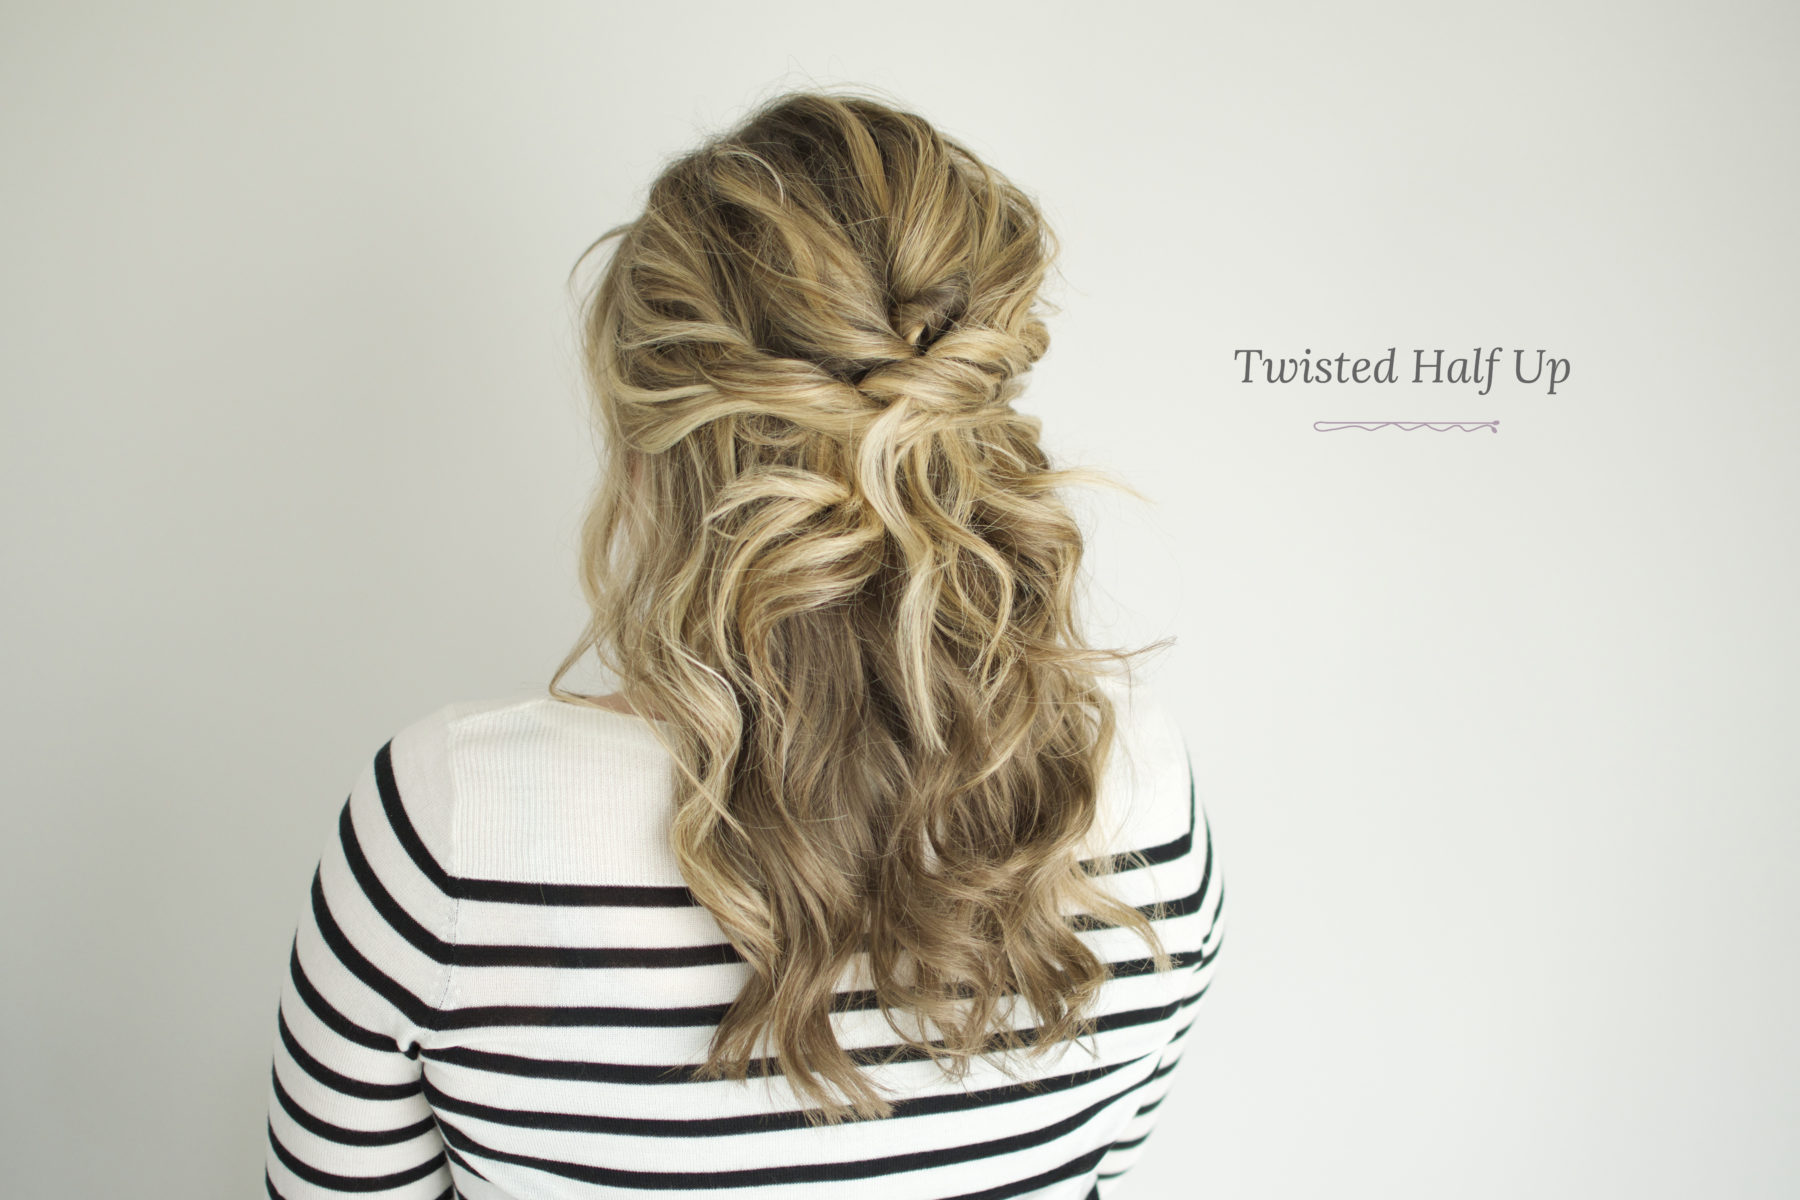 Twisted Half Up Tutorial  The Small Things Blog